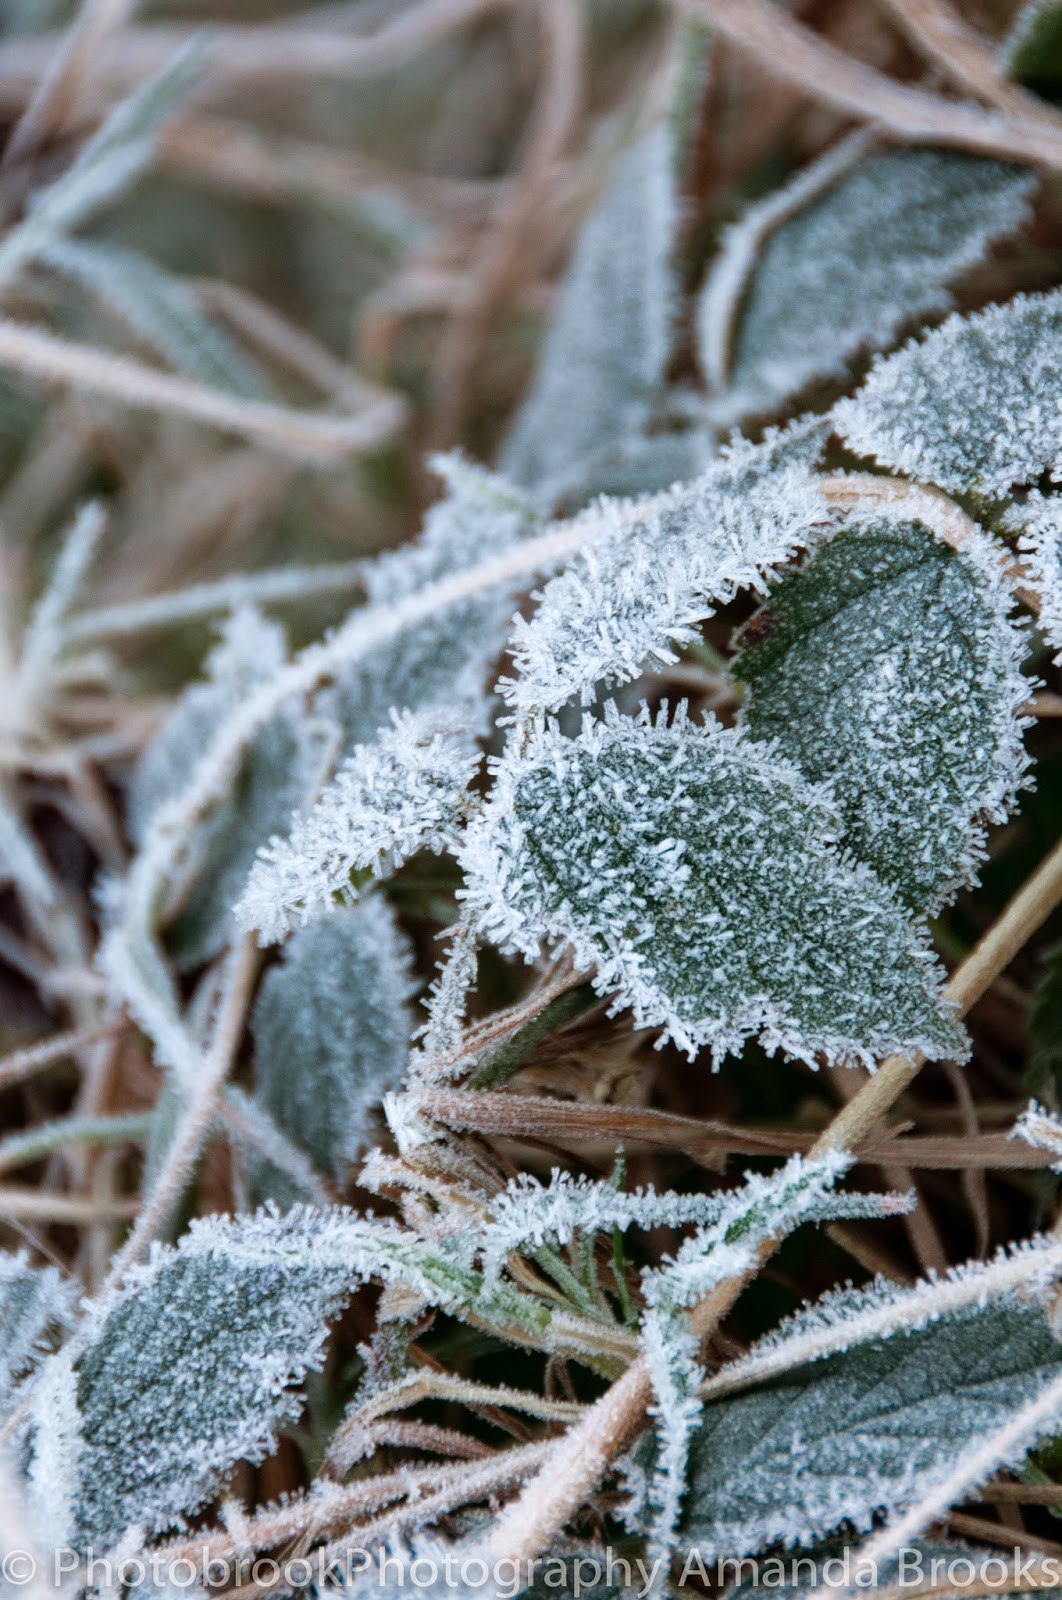 Plants under a heavy frost